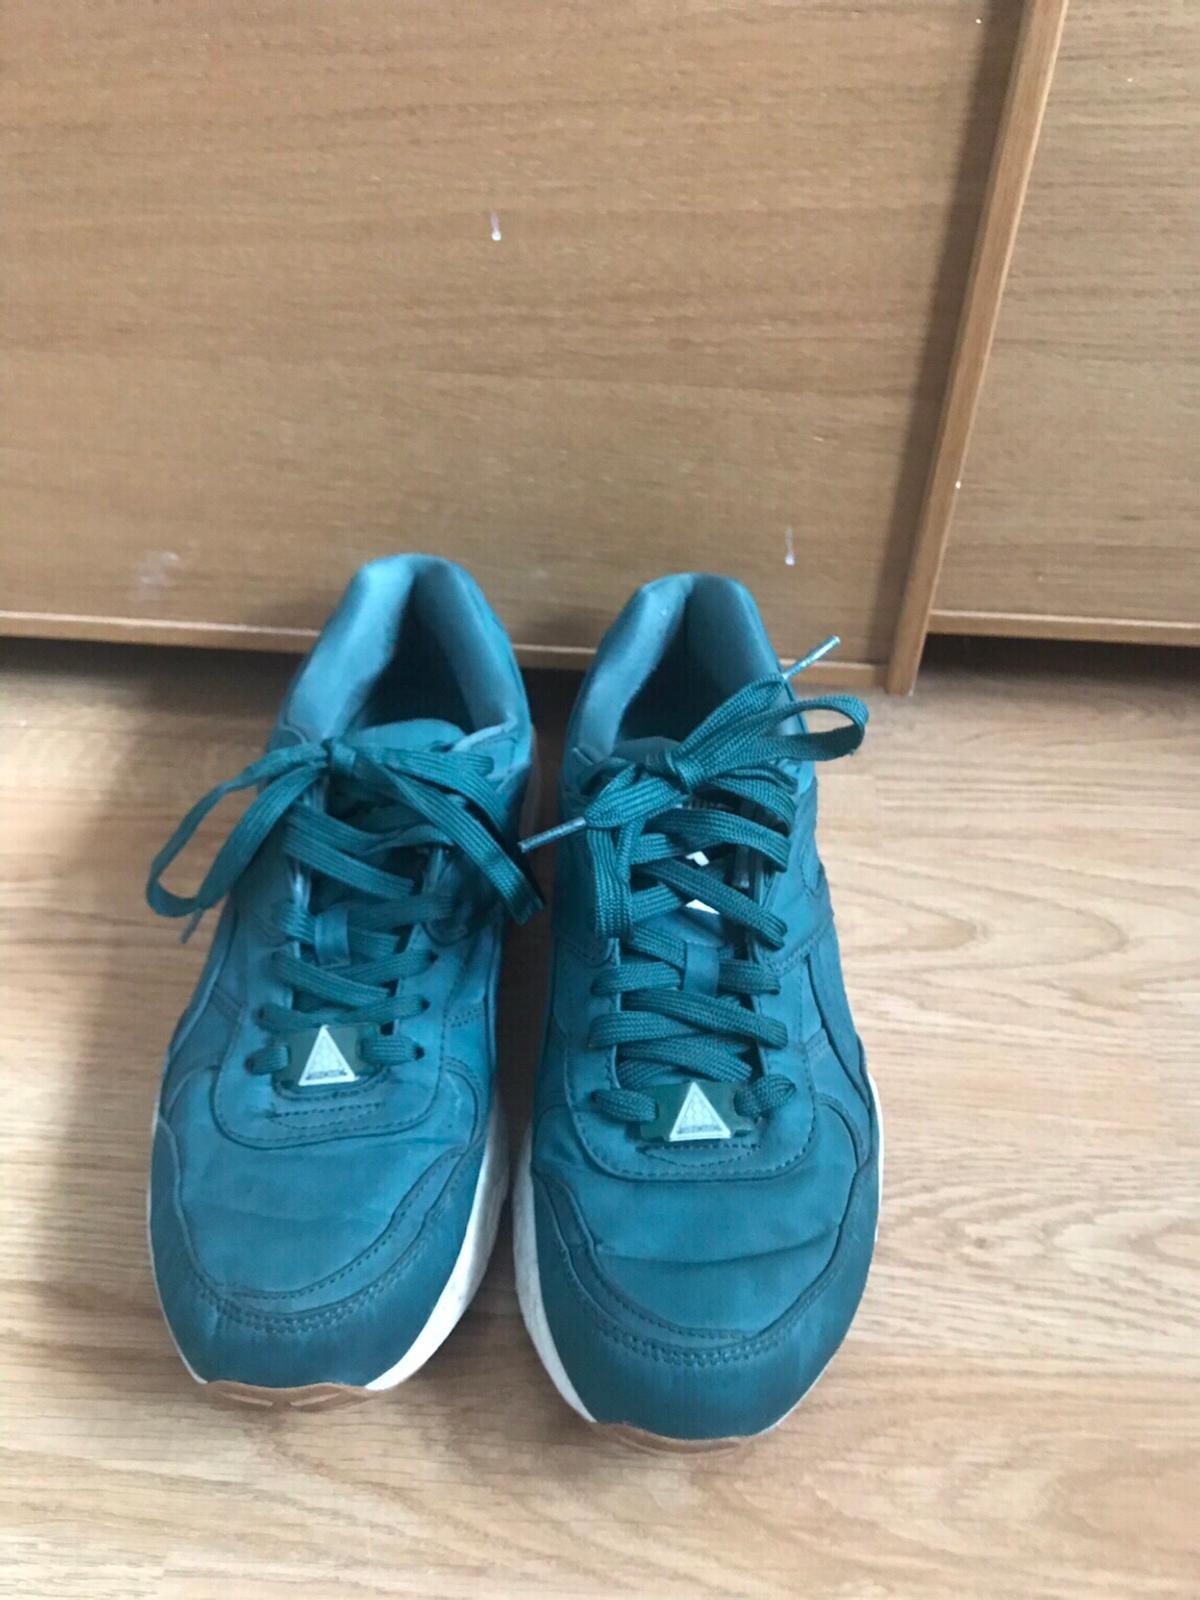 huge selection of 3e144 94202 PUMA TRAINERS Men's Size 7 in London for £10.00 for sale ...